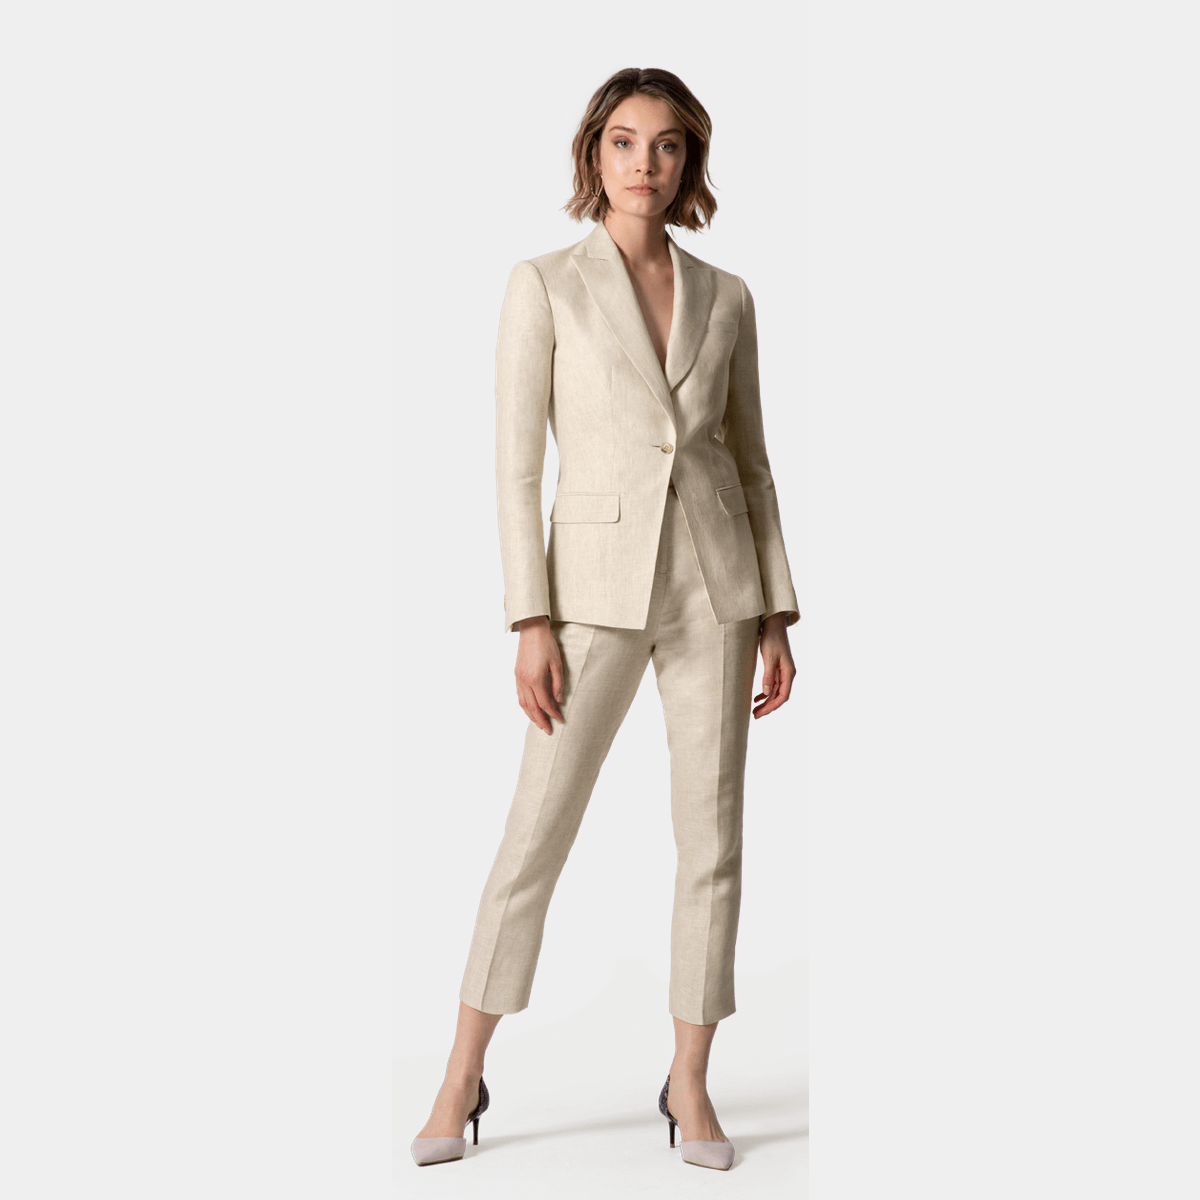 7ba4acfbbf18c Women's Linen Suits | Made to Measure - Sumissura